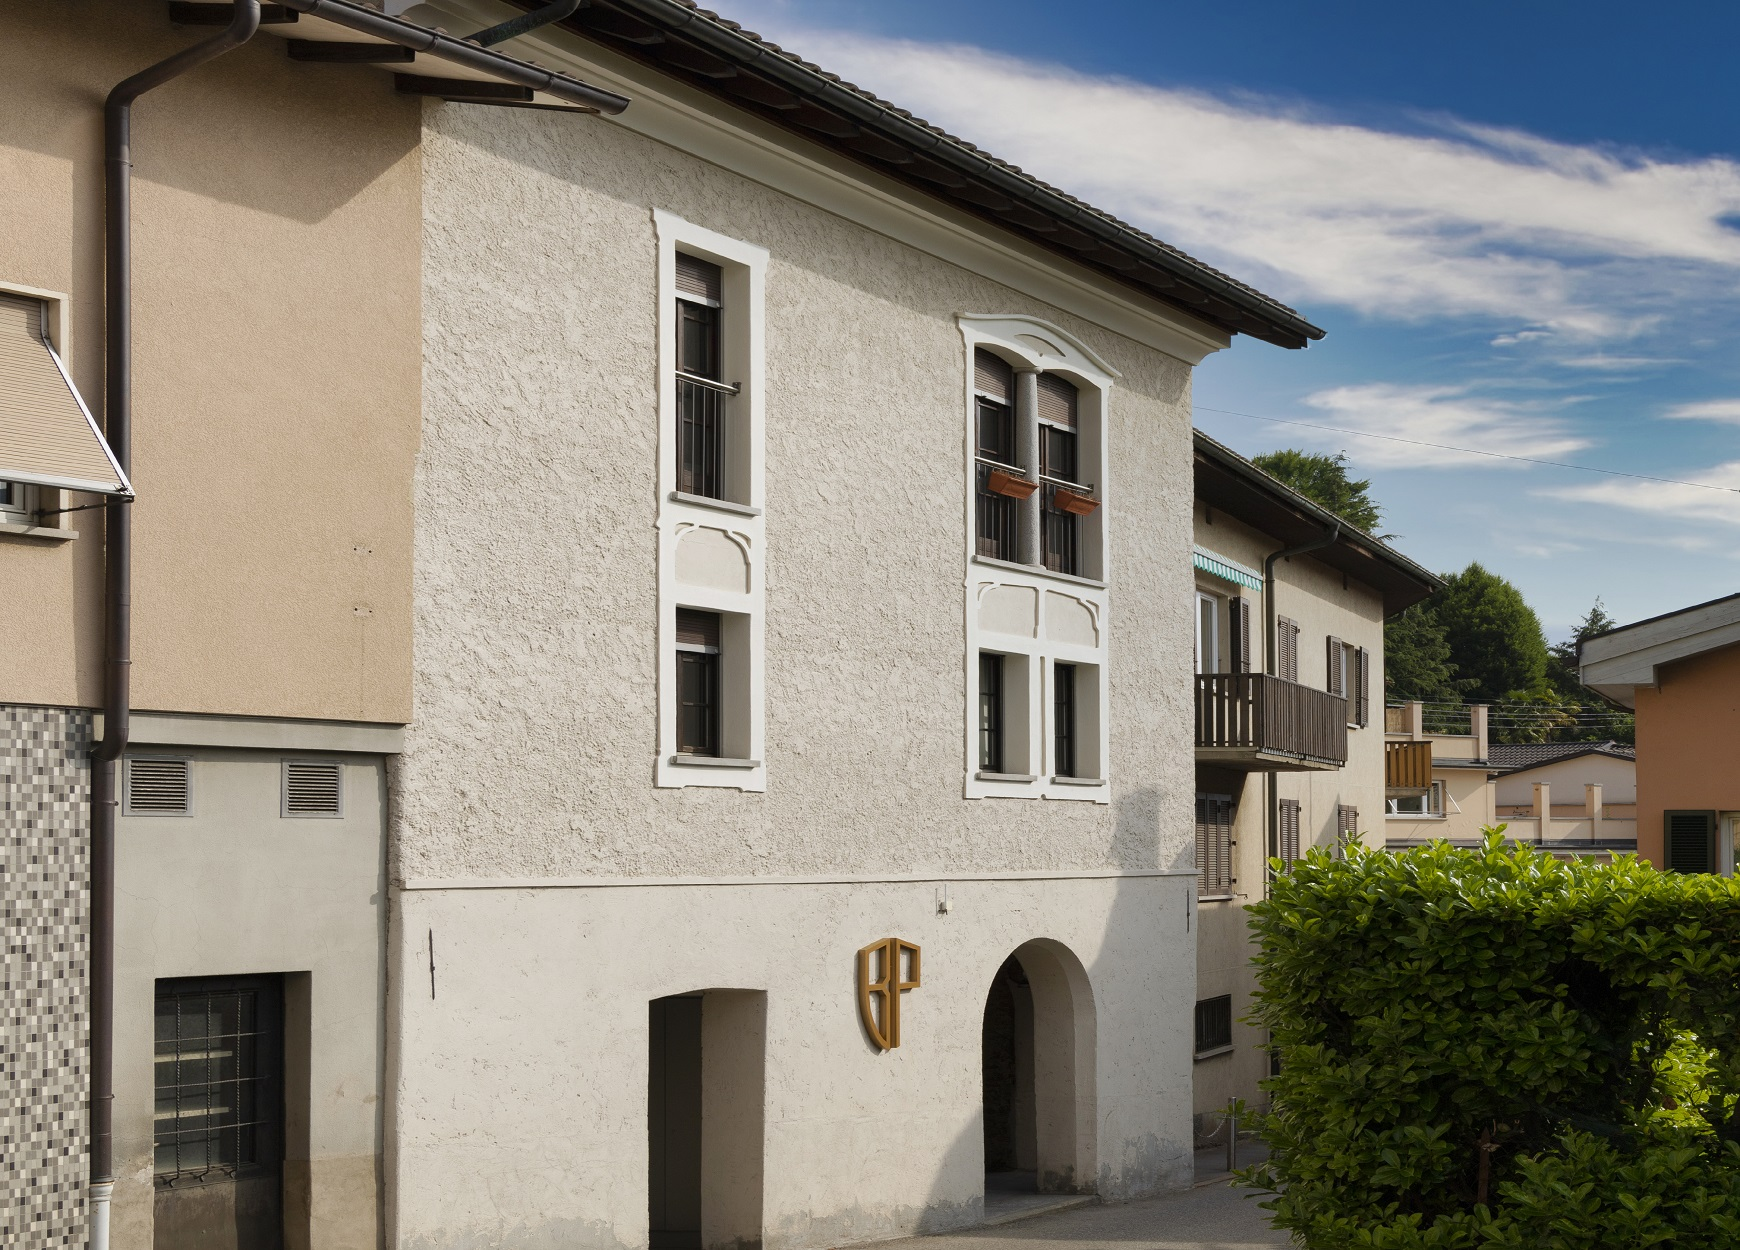 House in Collina d'Oro